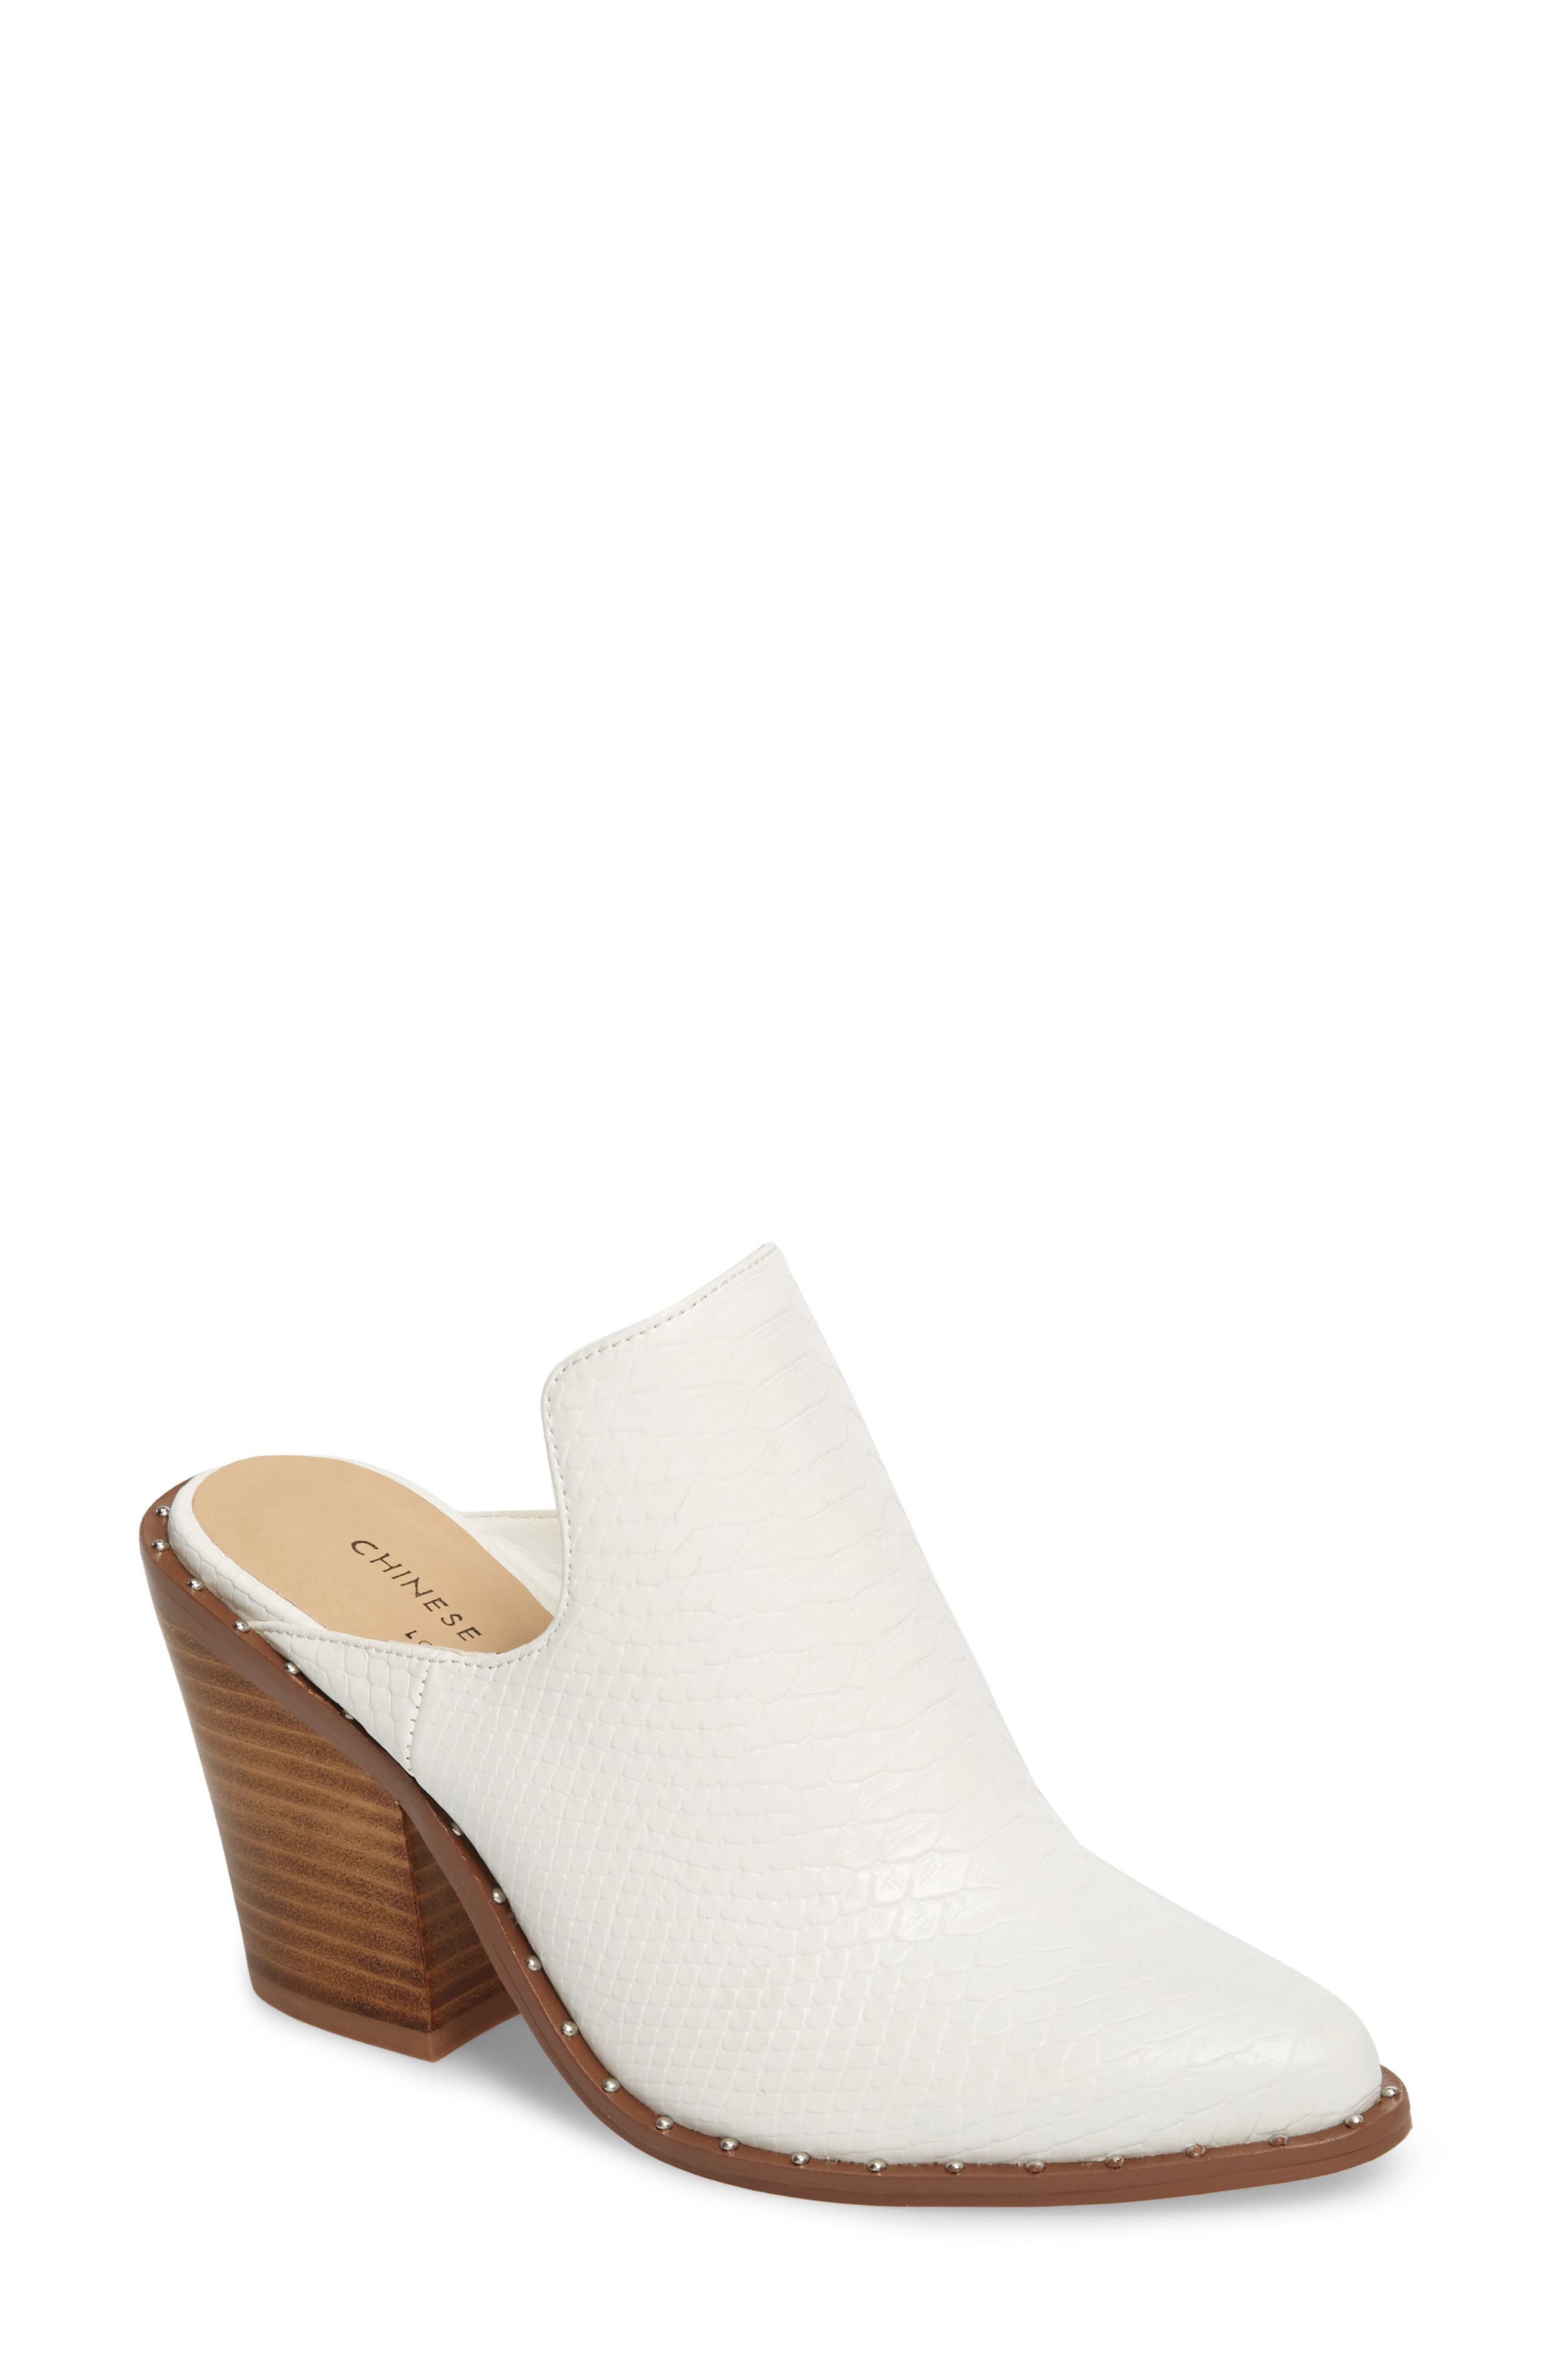 Chinese Laundry Springfield Mule Bootie (Women)